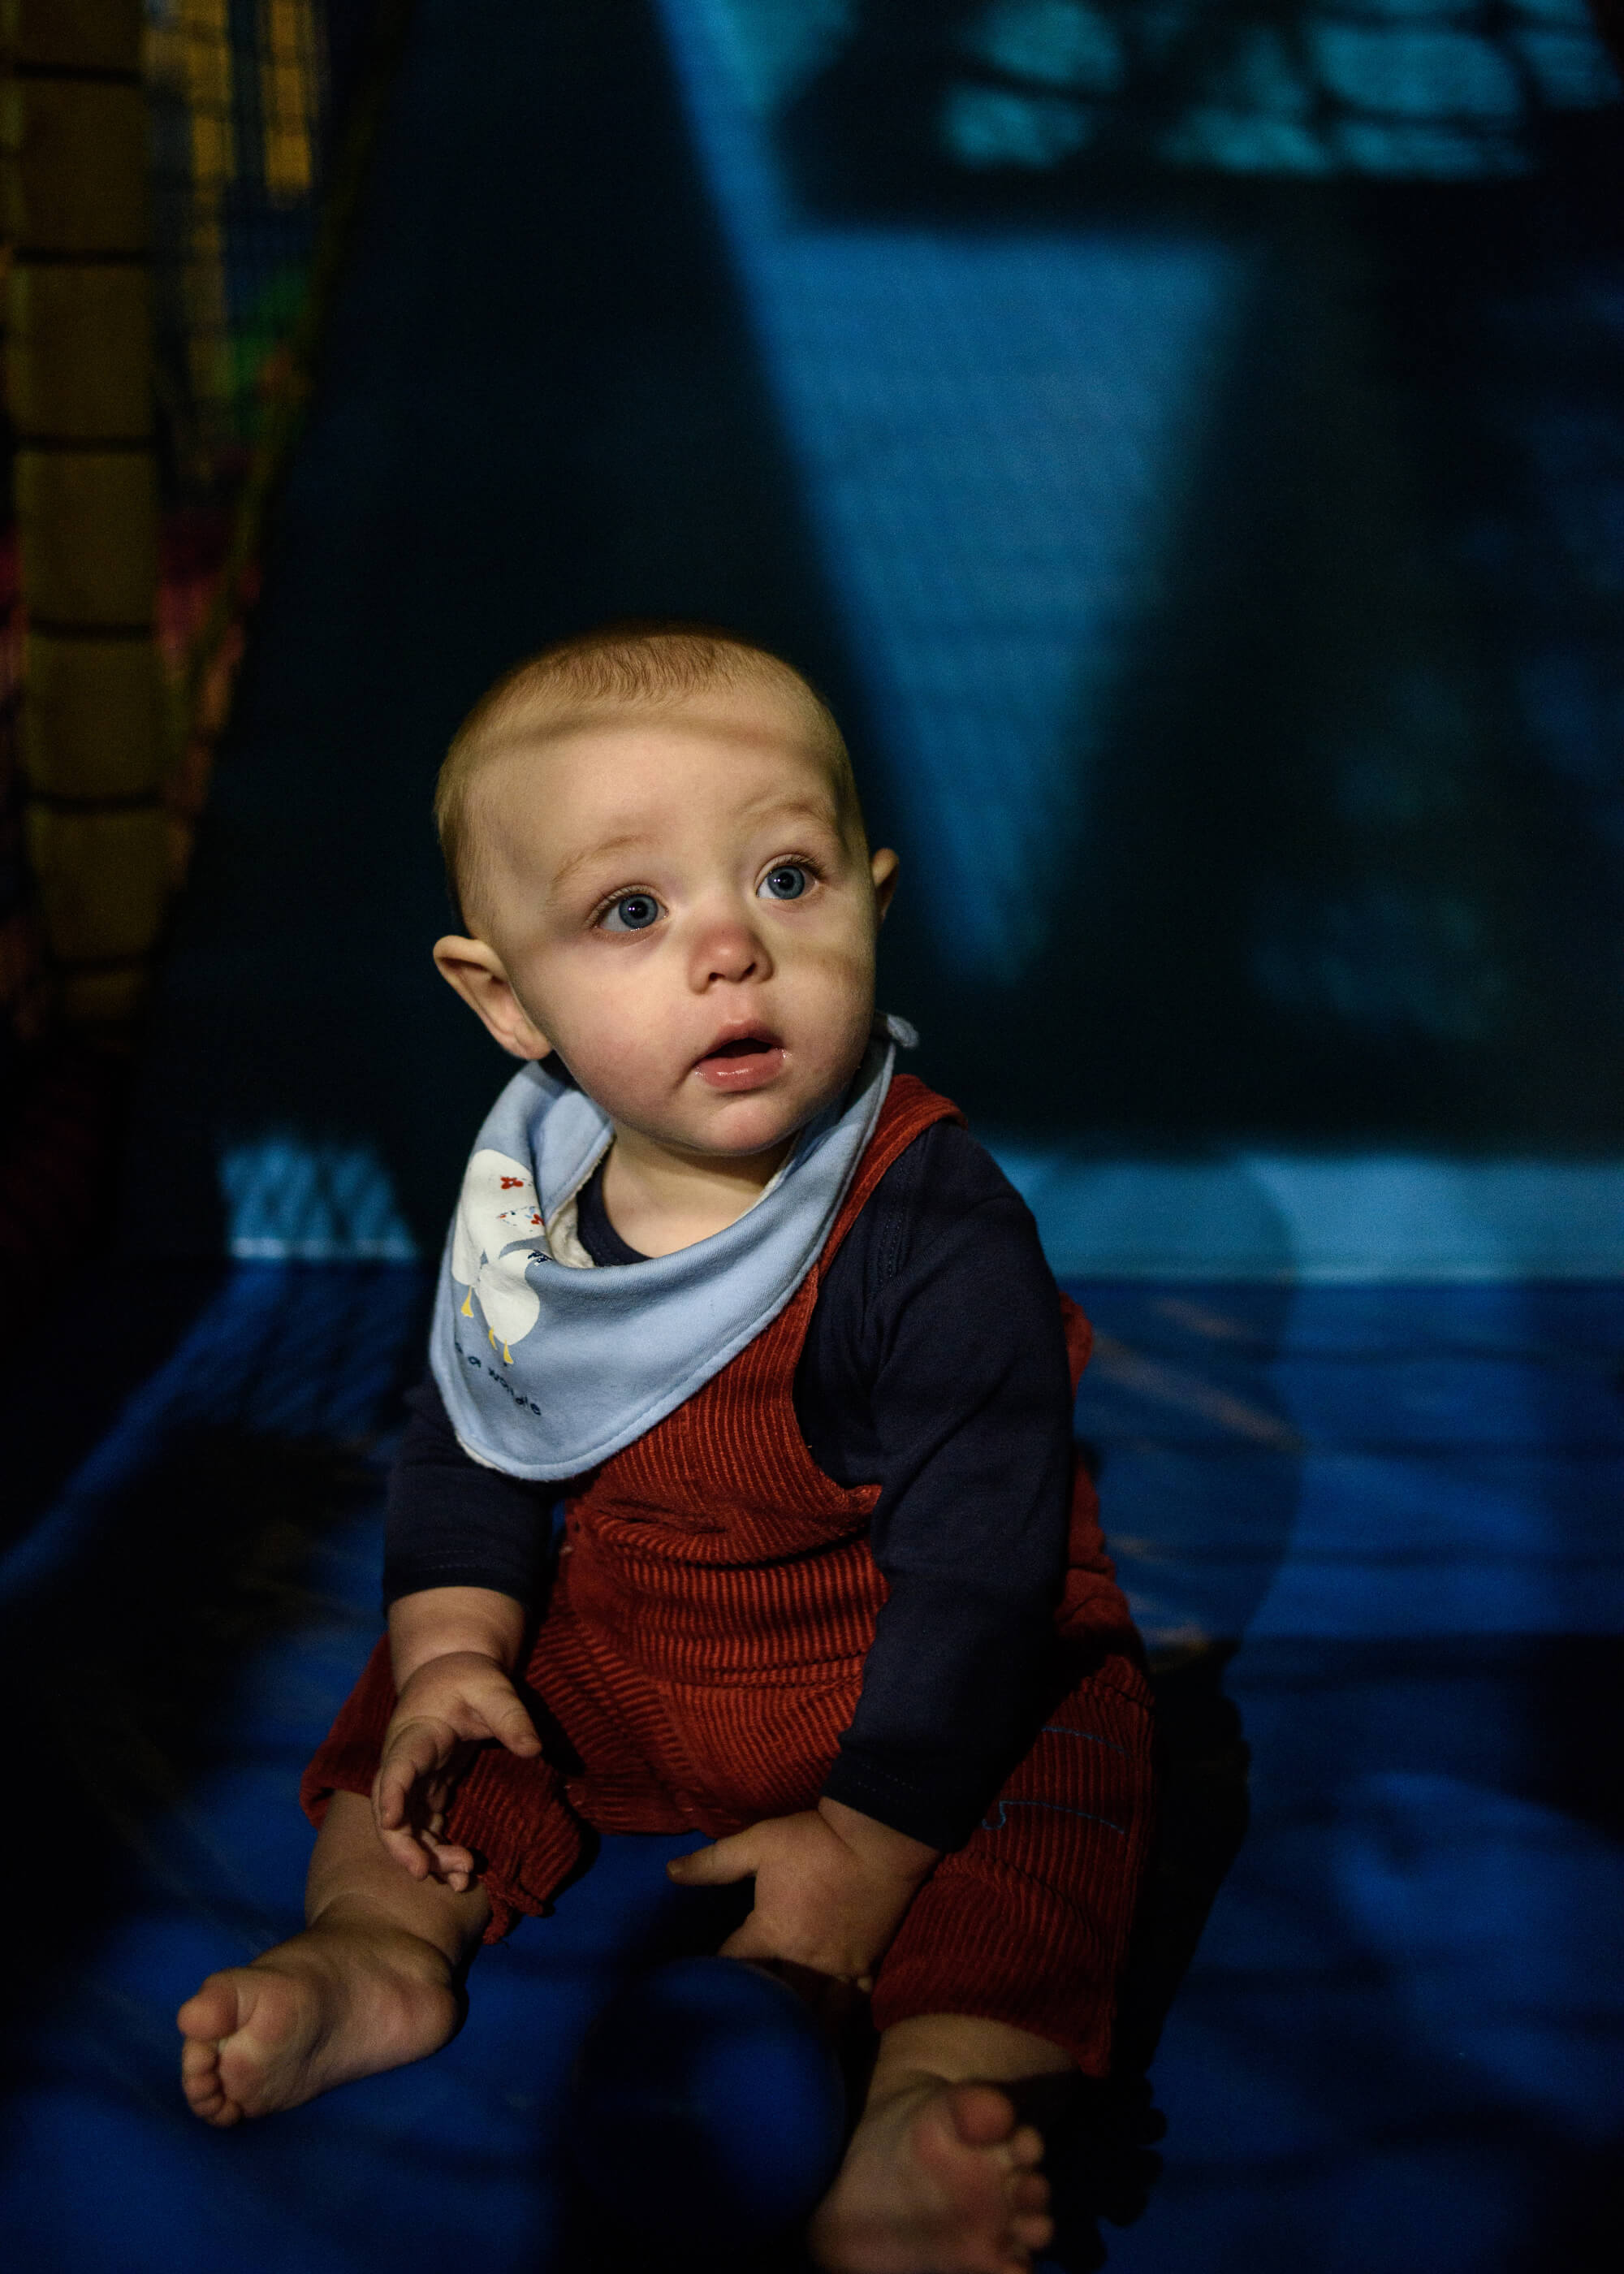 Alice Dempsey photography goodnight god bless baby playing on floor with blue background the south west collective of photography ltd